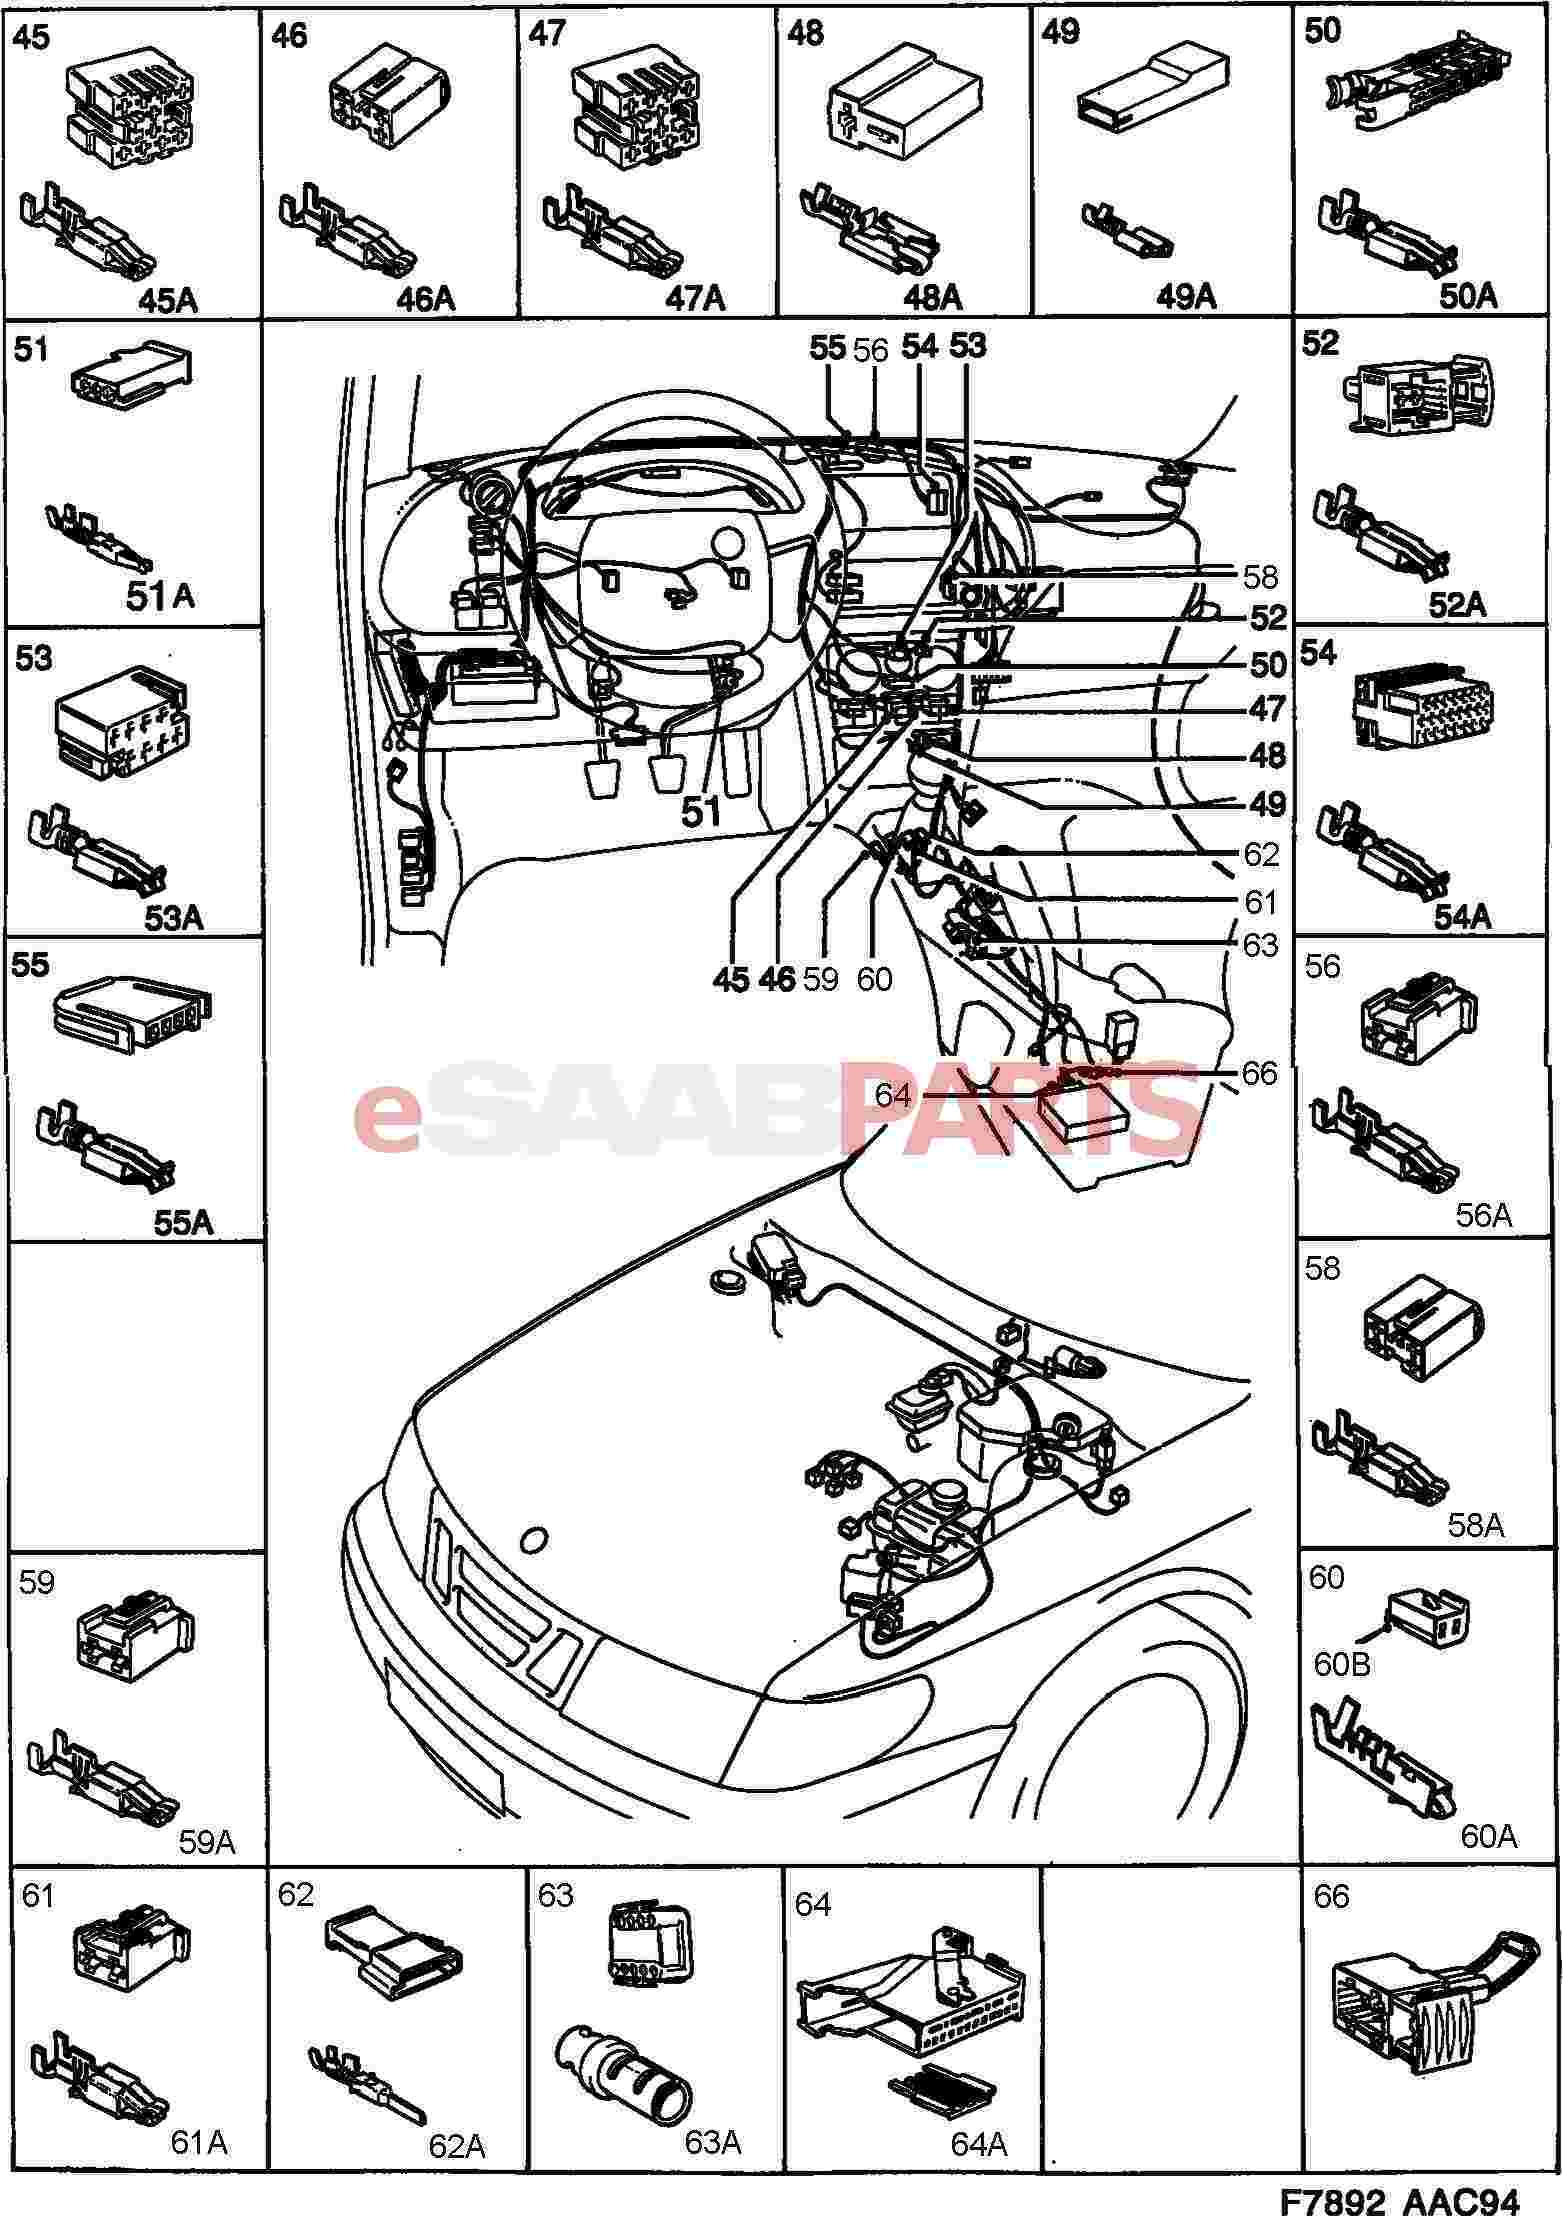 12790414 saab cable terminal genuine saab parts from. Black Bedroom Furniture Sets. Home Design Ideas